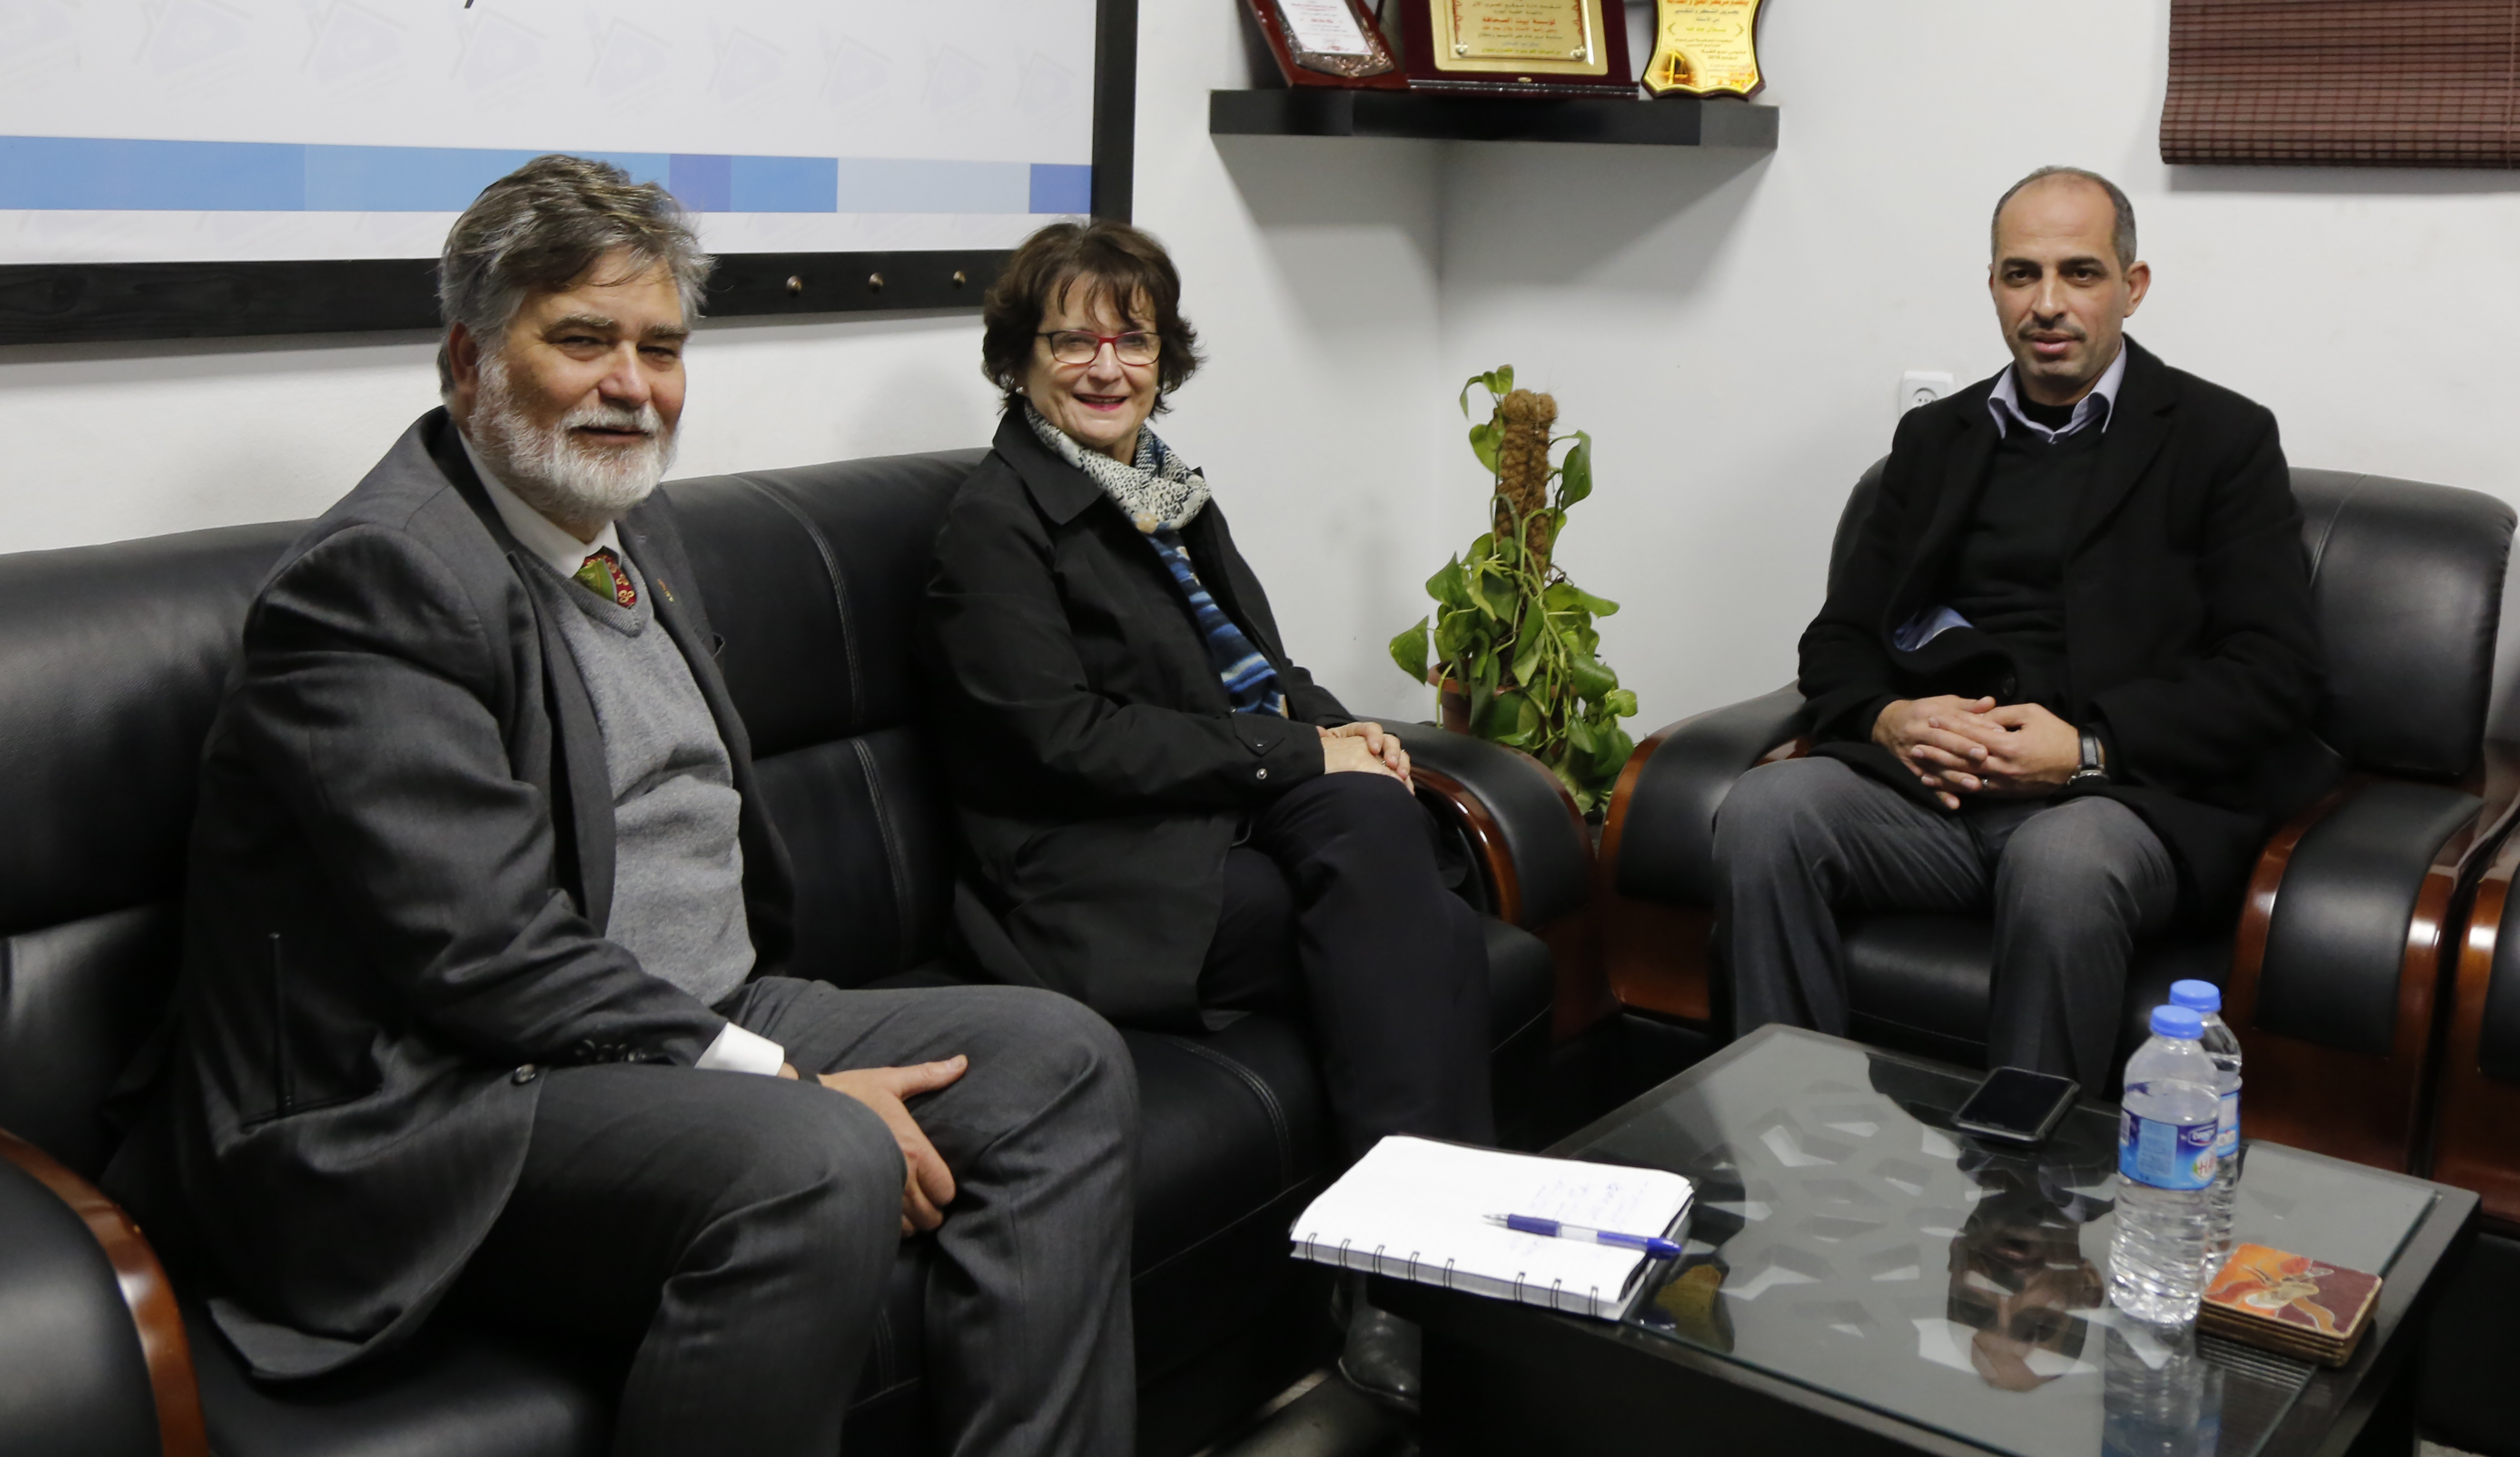 The Canadian Ambassador and the Canadian Consul visit to the Press House